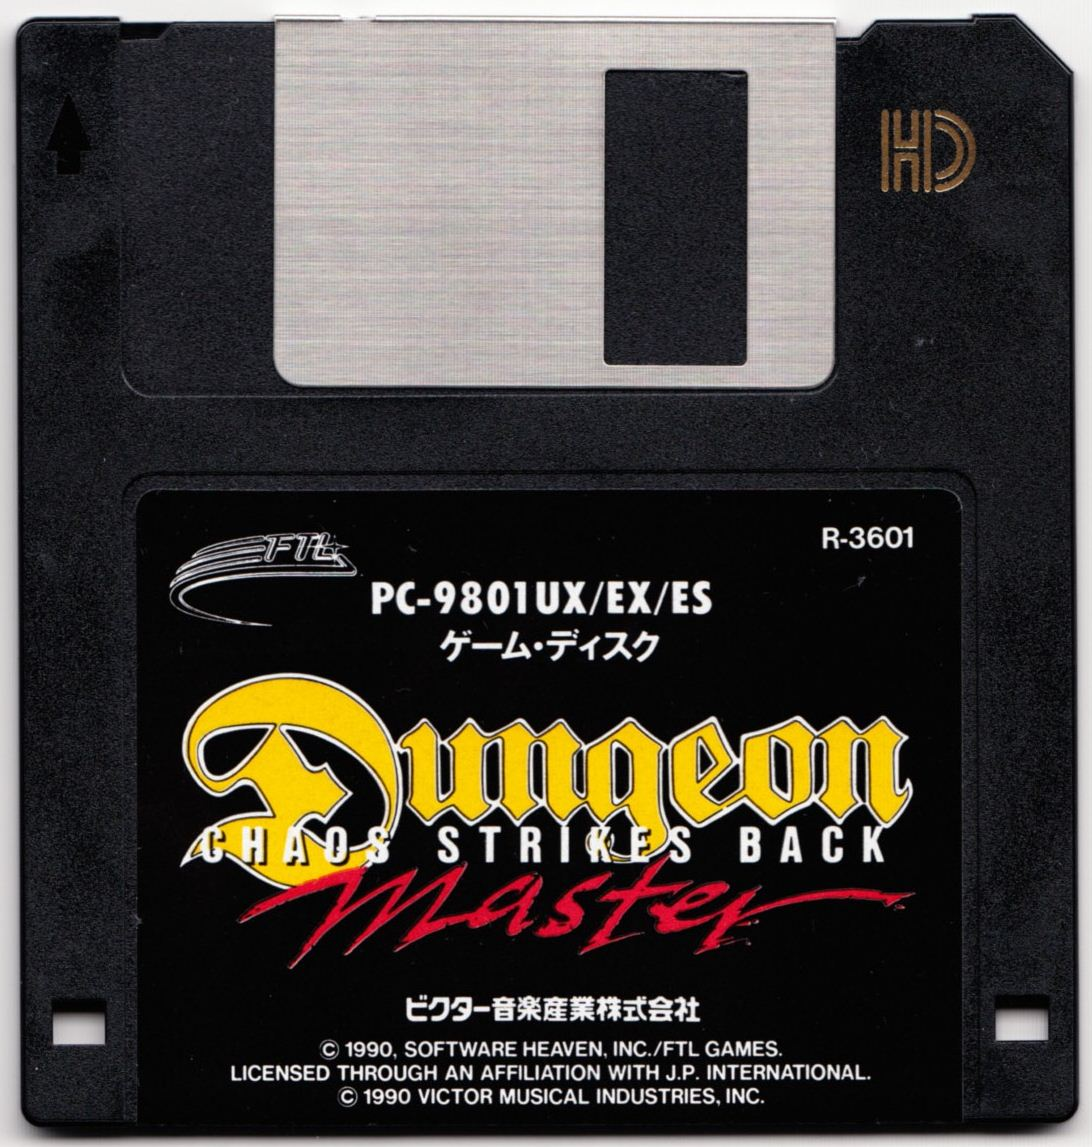 Game - Chaos Strikes Back - JP - PC-9801 - 3.5-inch - Game Disk - Front - Scan